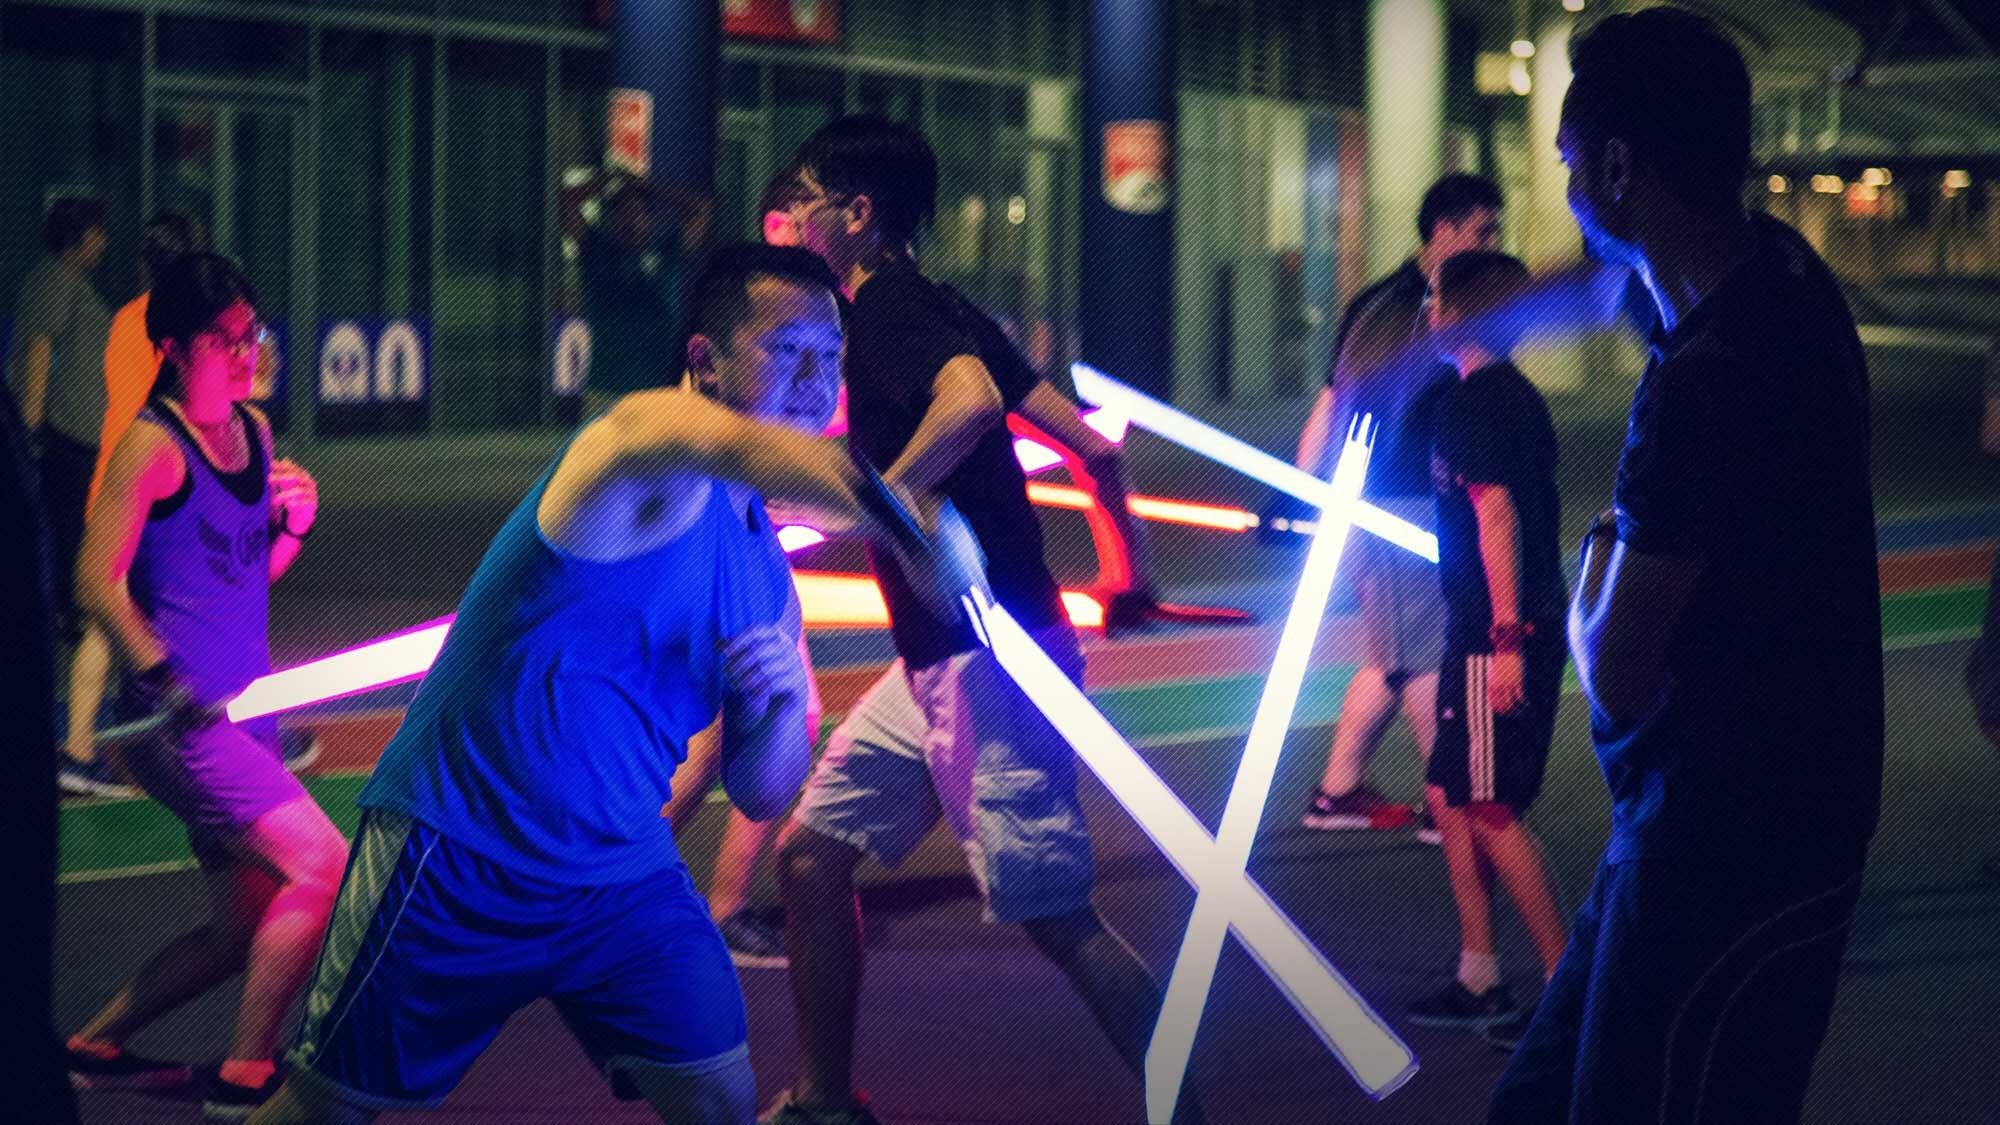 Image result for Lightsaber fighting singapore